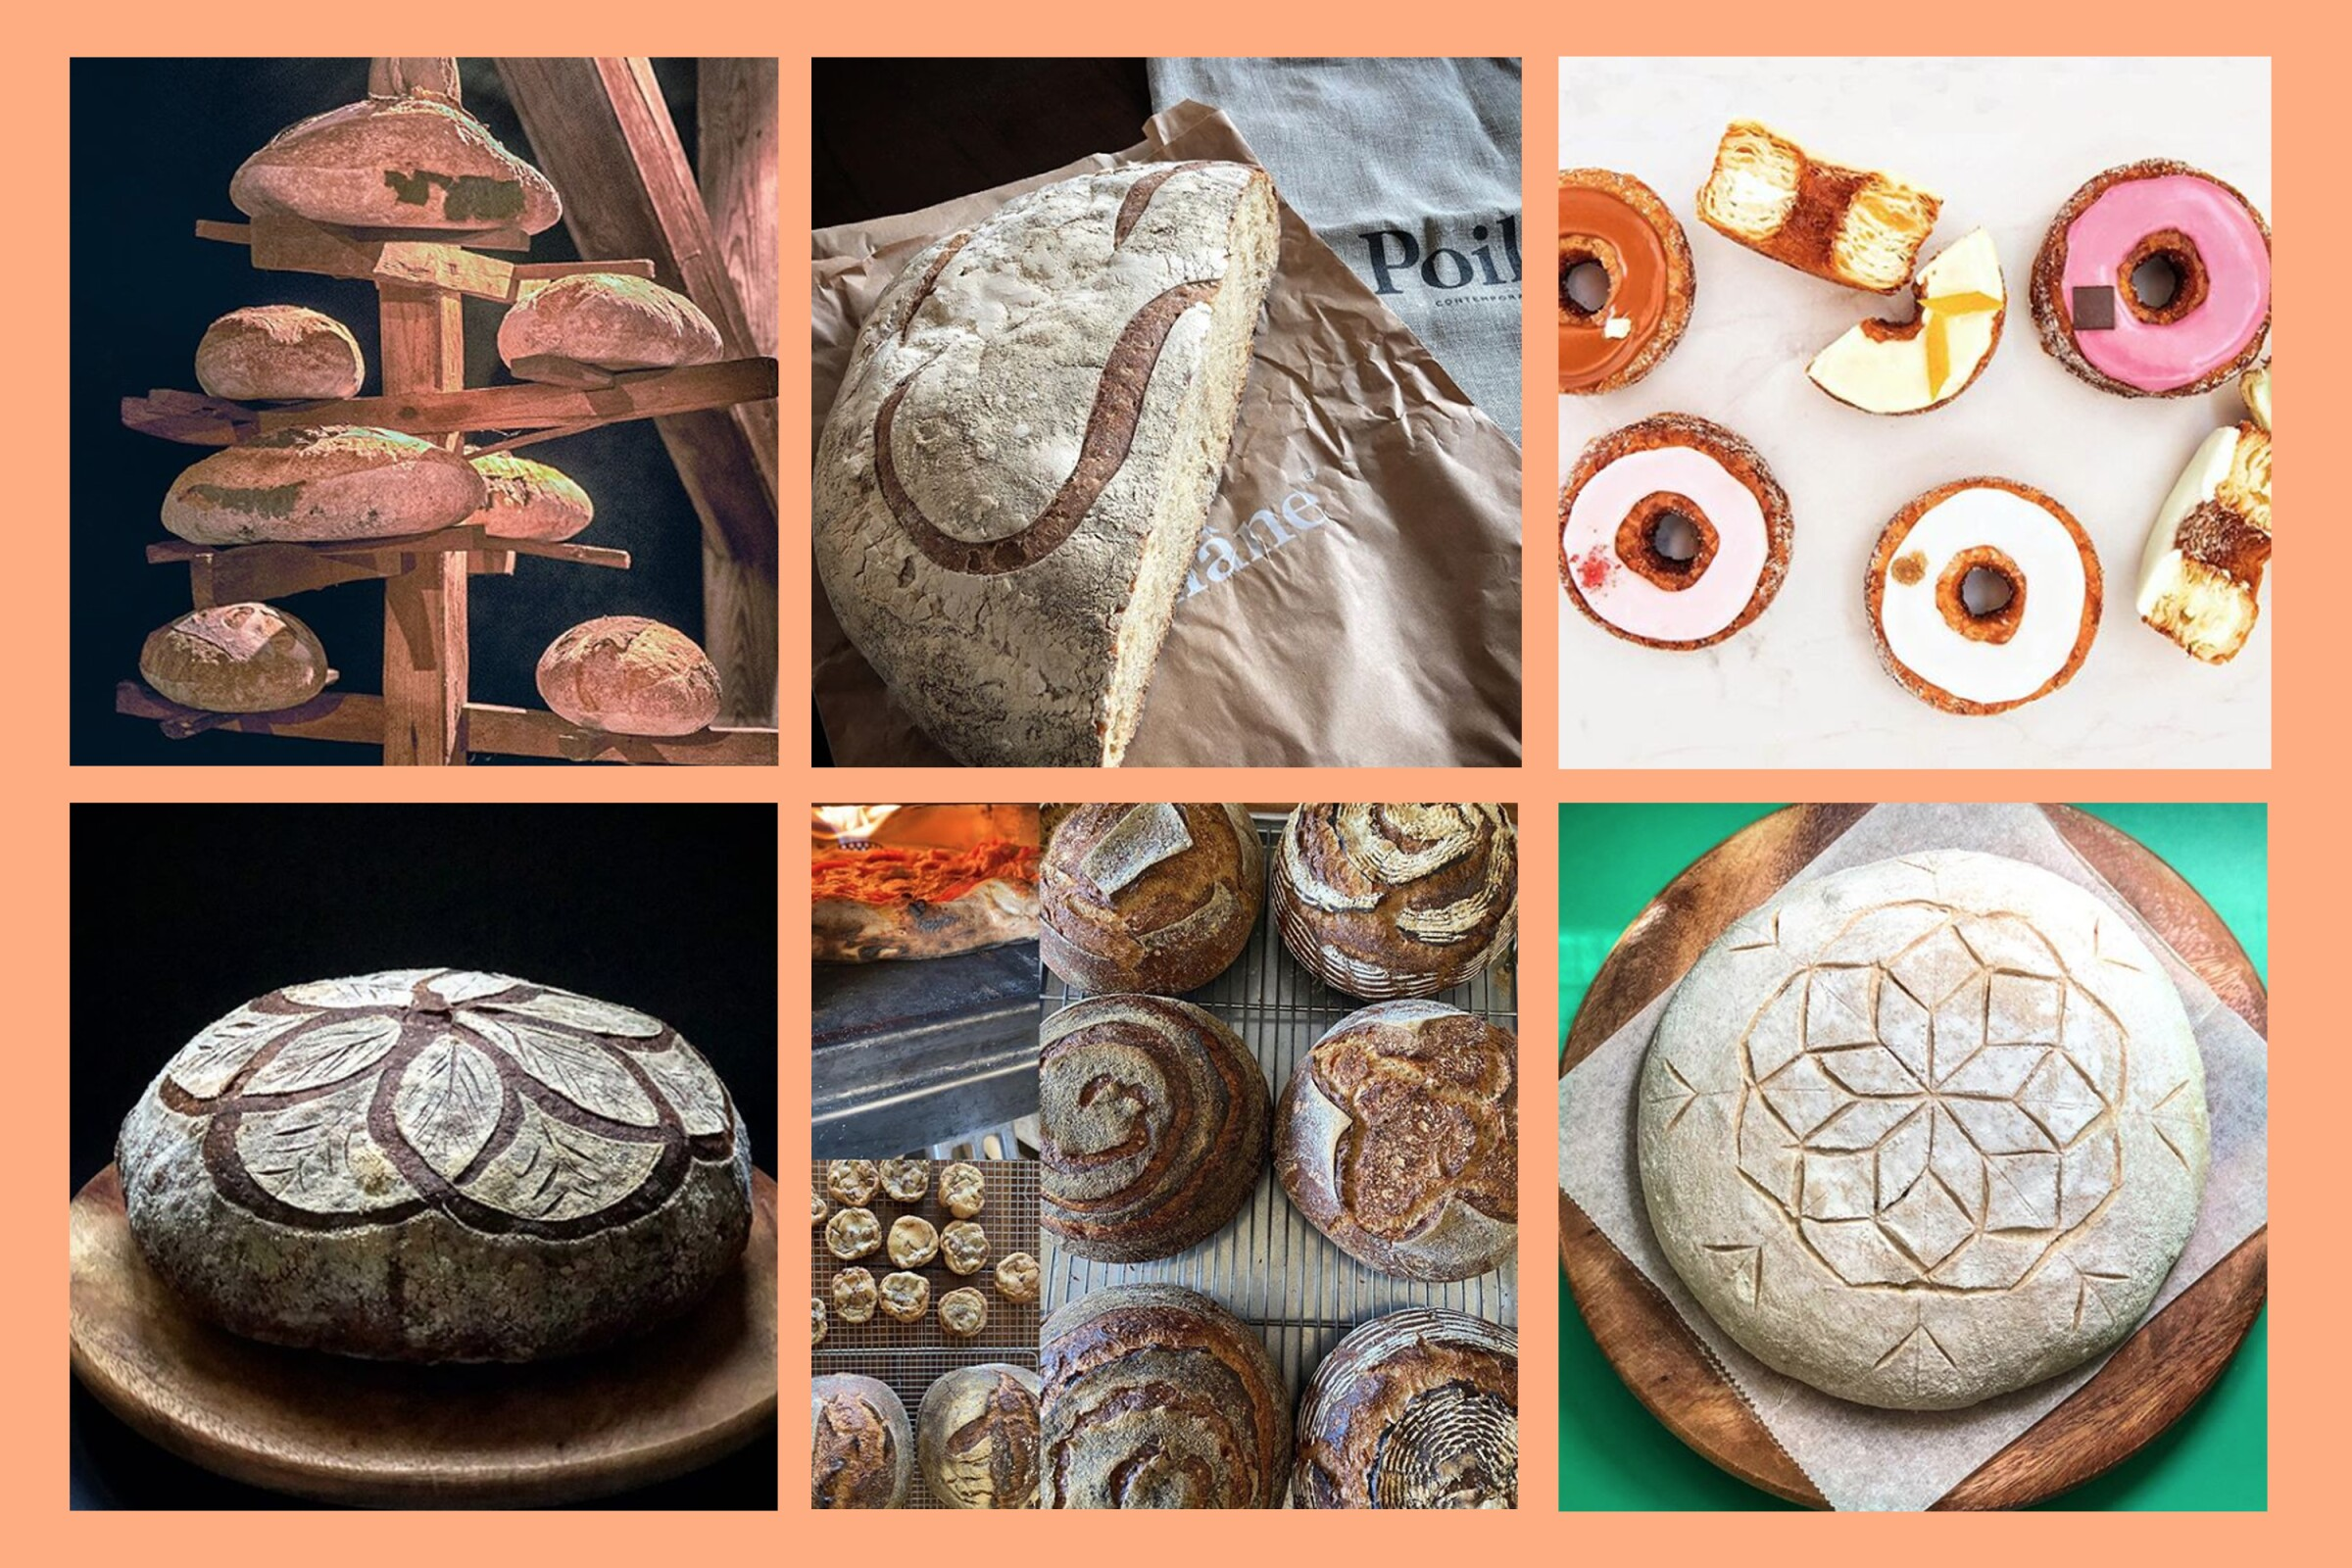 Images from Bread Project Worldwide, Gary Menes, Dominique Ansel, Poilâne and Morgi's Dough Engineering.